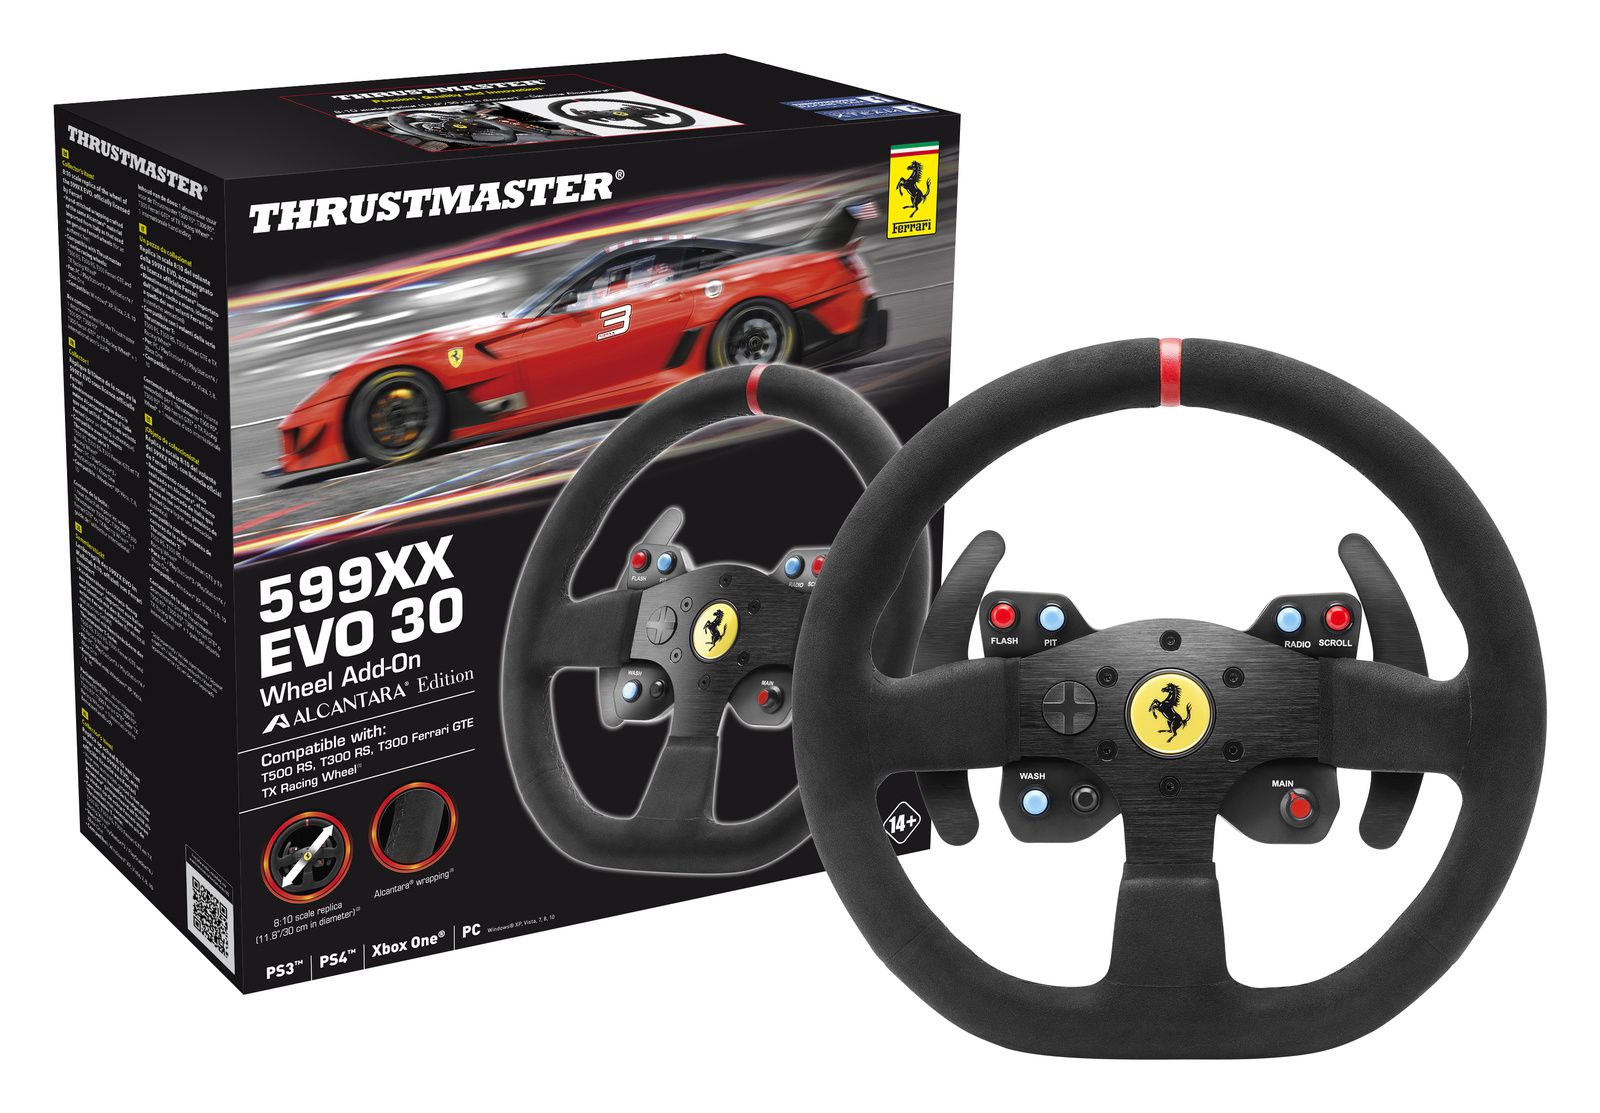 Thrustmaster annonce le &quot&#x3B;599XX EVO 30&quot&#x3B;